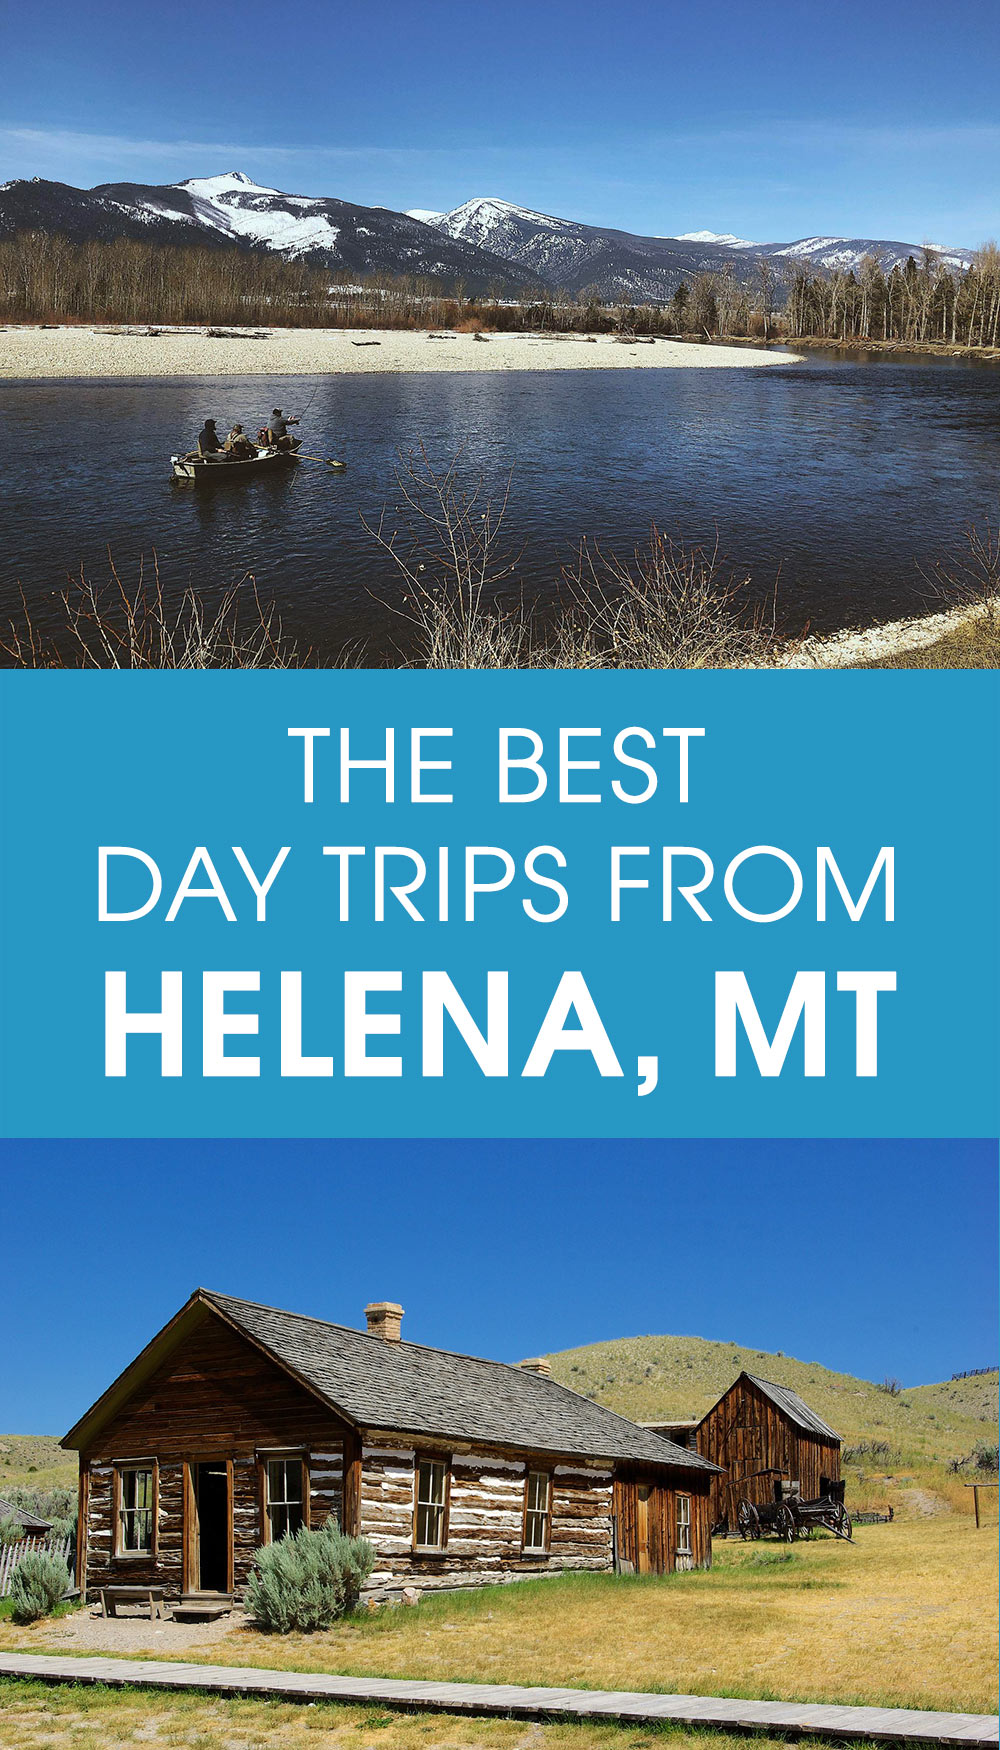 the best day trips from Helena, MT